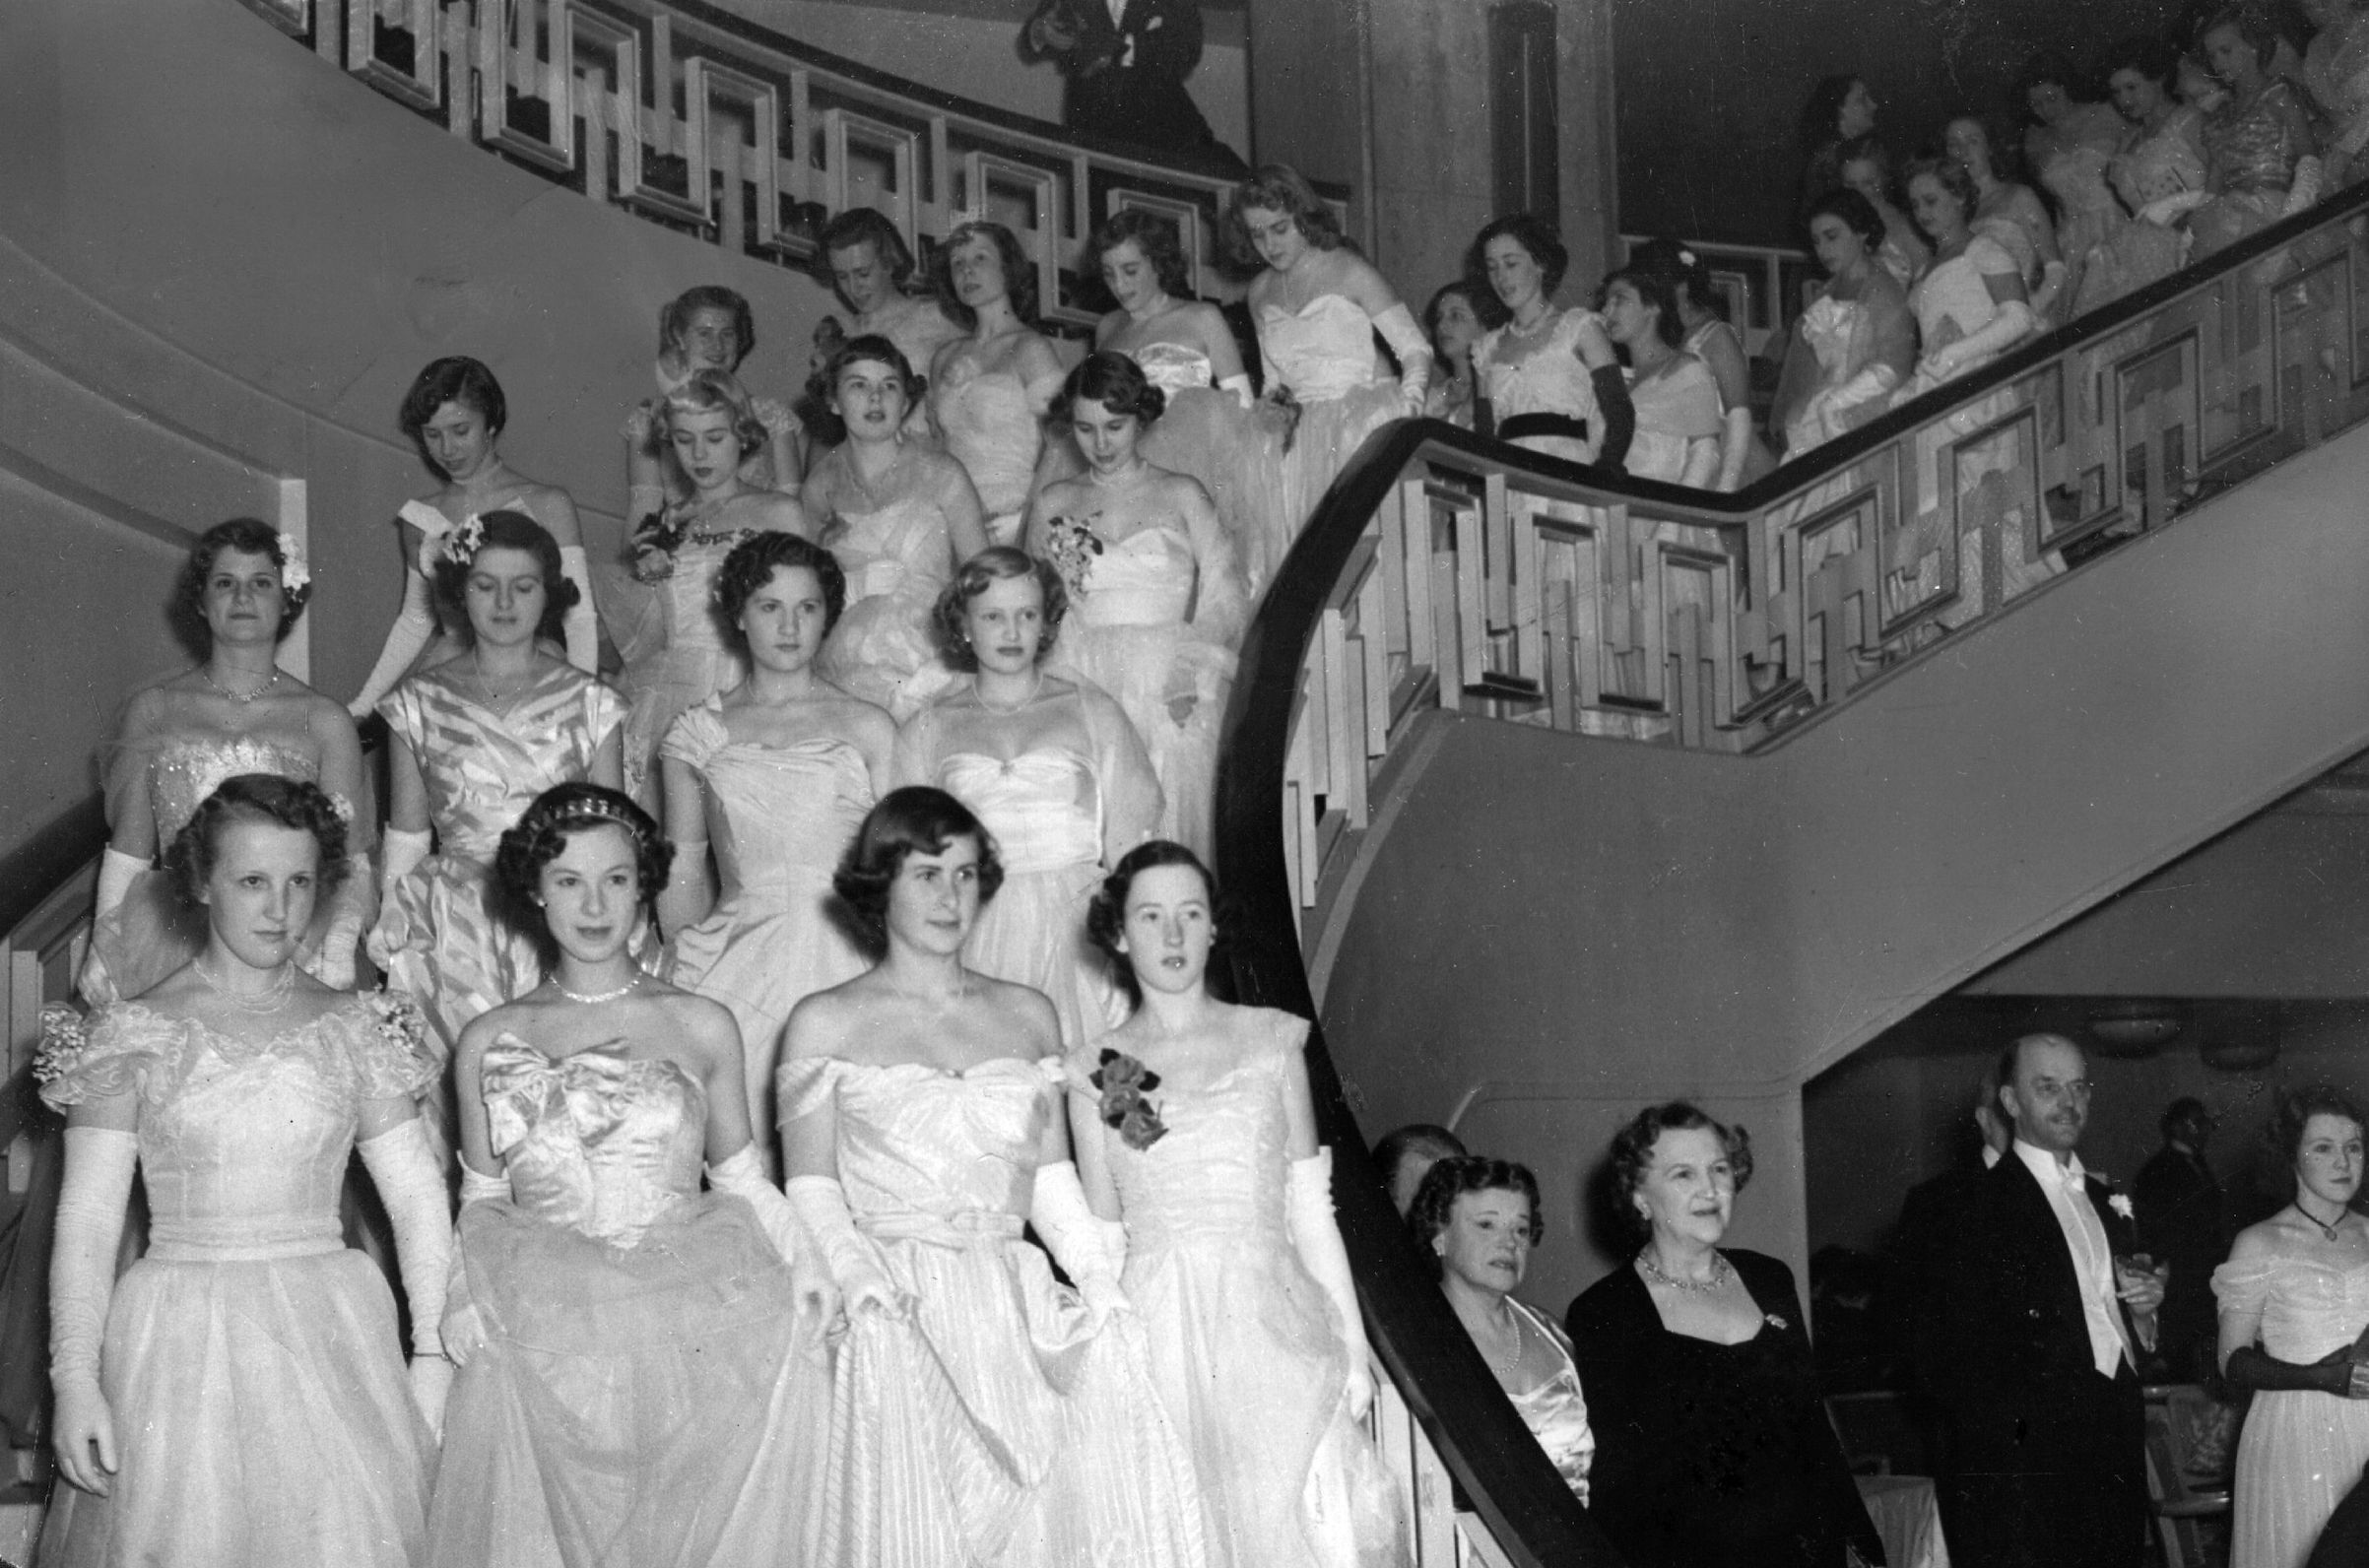 May 19, 1950:  The massed ranks of debutantes at the Queen Charlotte's Ball at Grosvenor House descend into the ballroom.